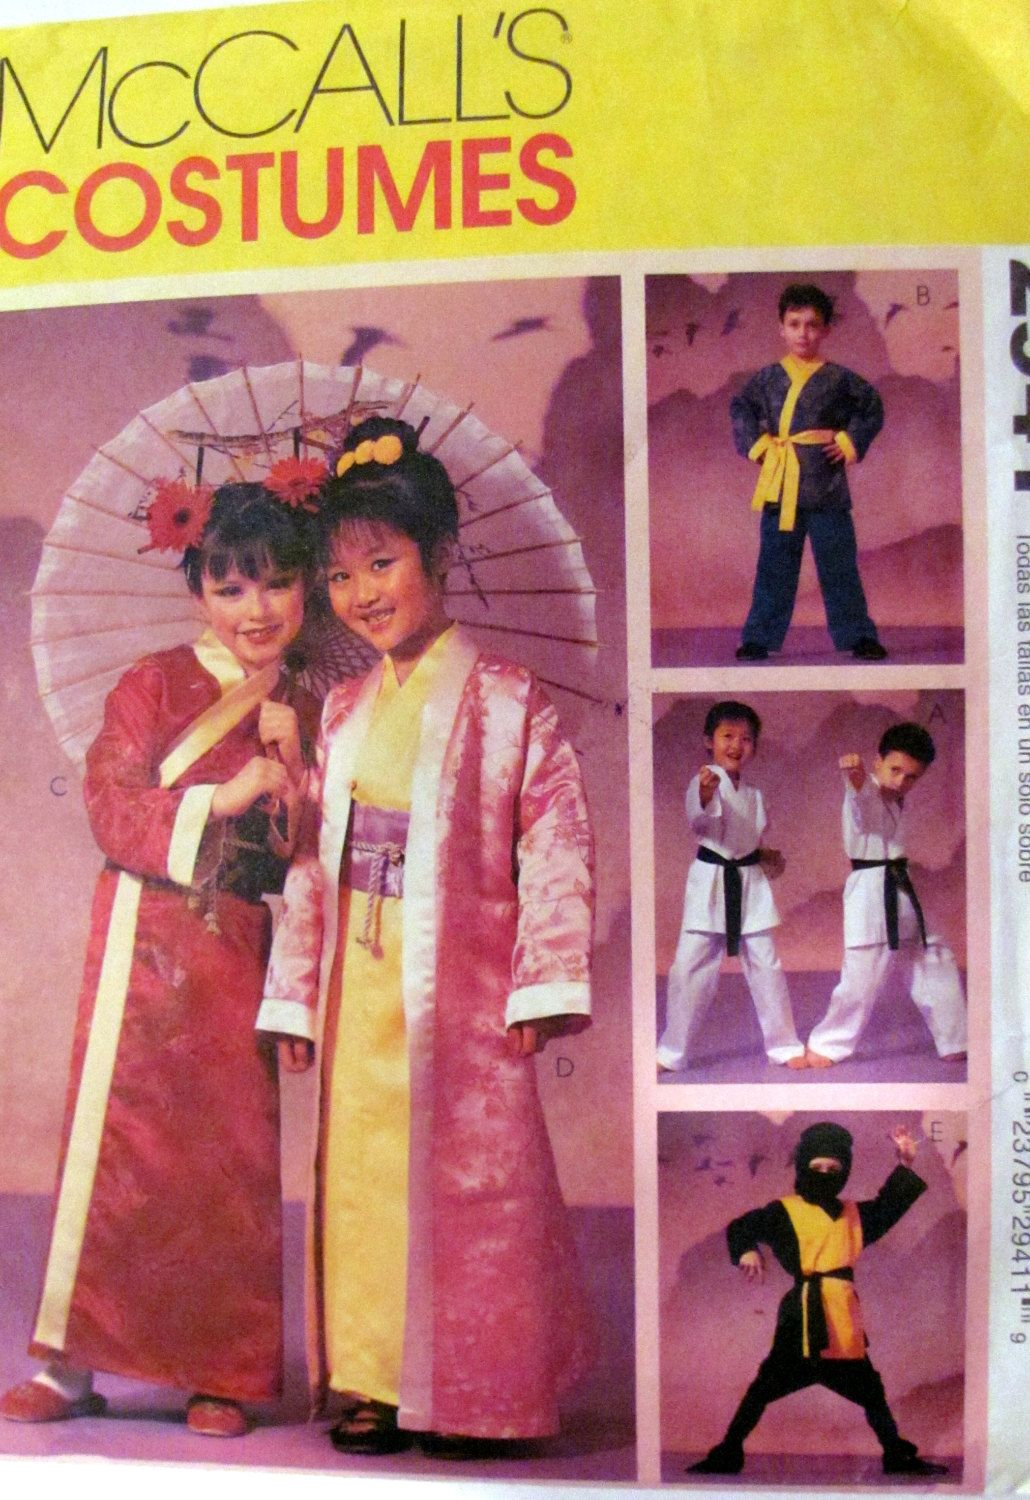 mccalls 2941 asian inspired childrens halloween costume pattern geisha girl kung fu karate unisex childrens sizes 3 to 8 unused by onceuponanheirloom